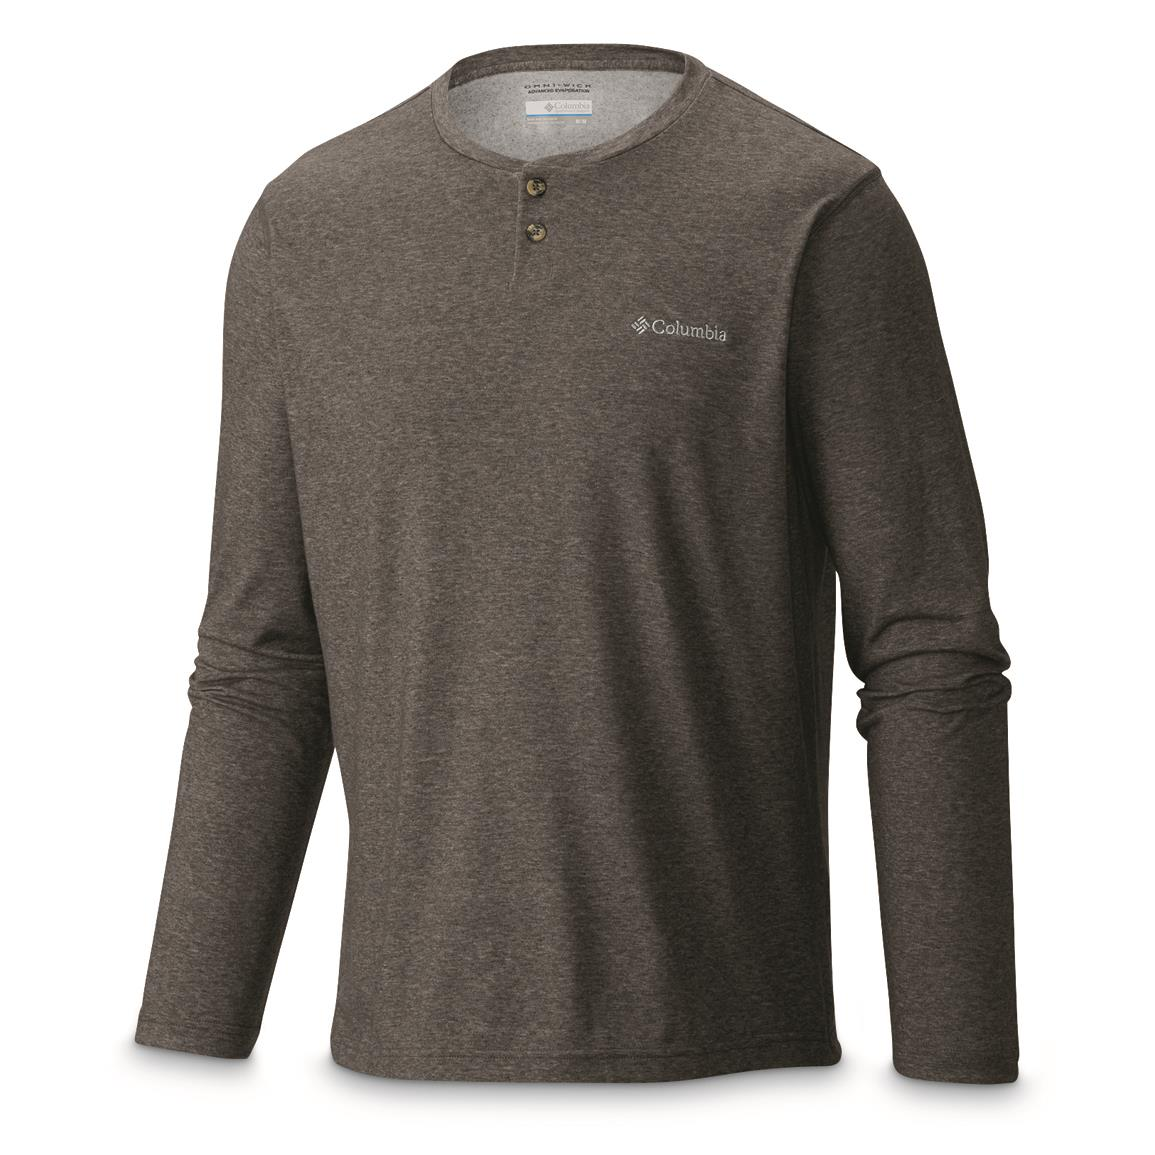 Columbia Men's Thistletown Park Henley, Charcoal